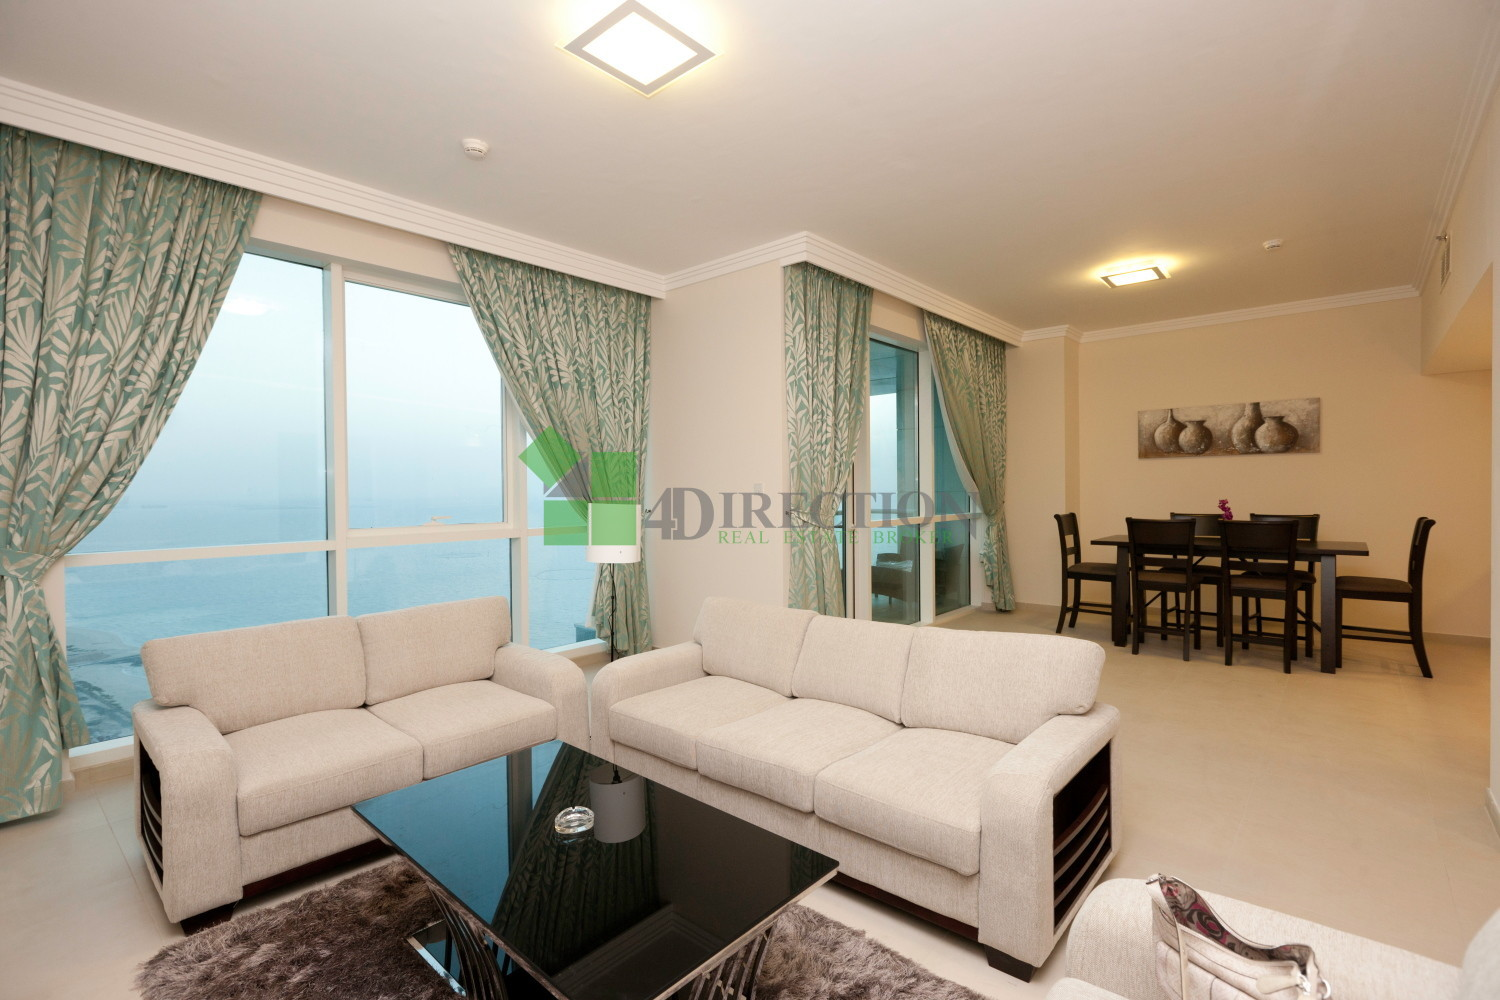 astonishing-view-2-br-m-for-sale-in-jbr